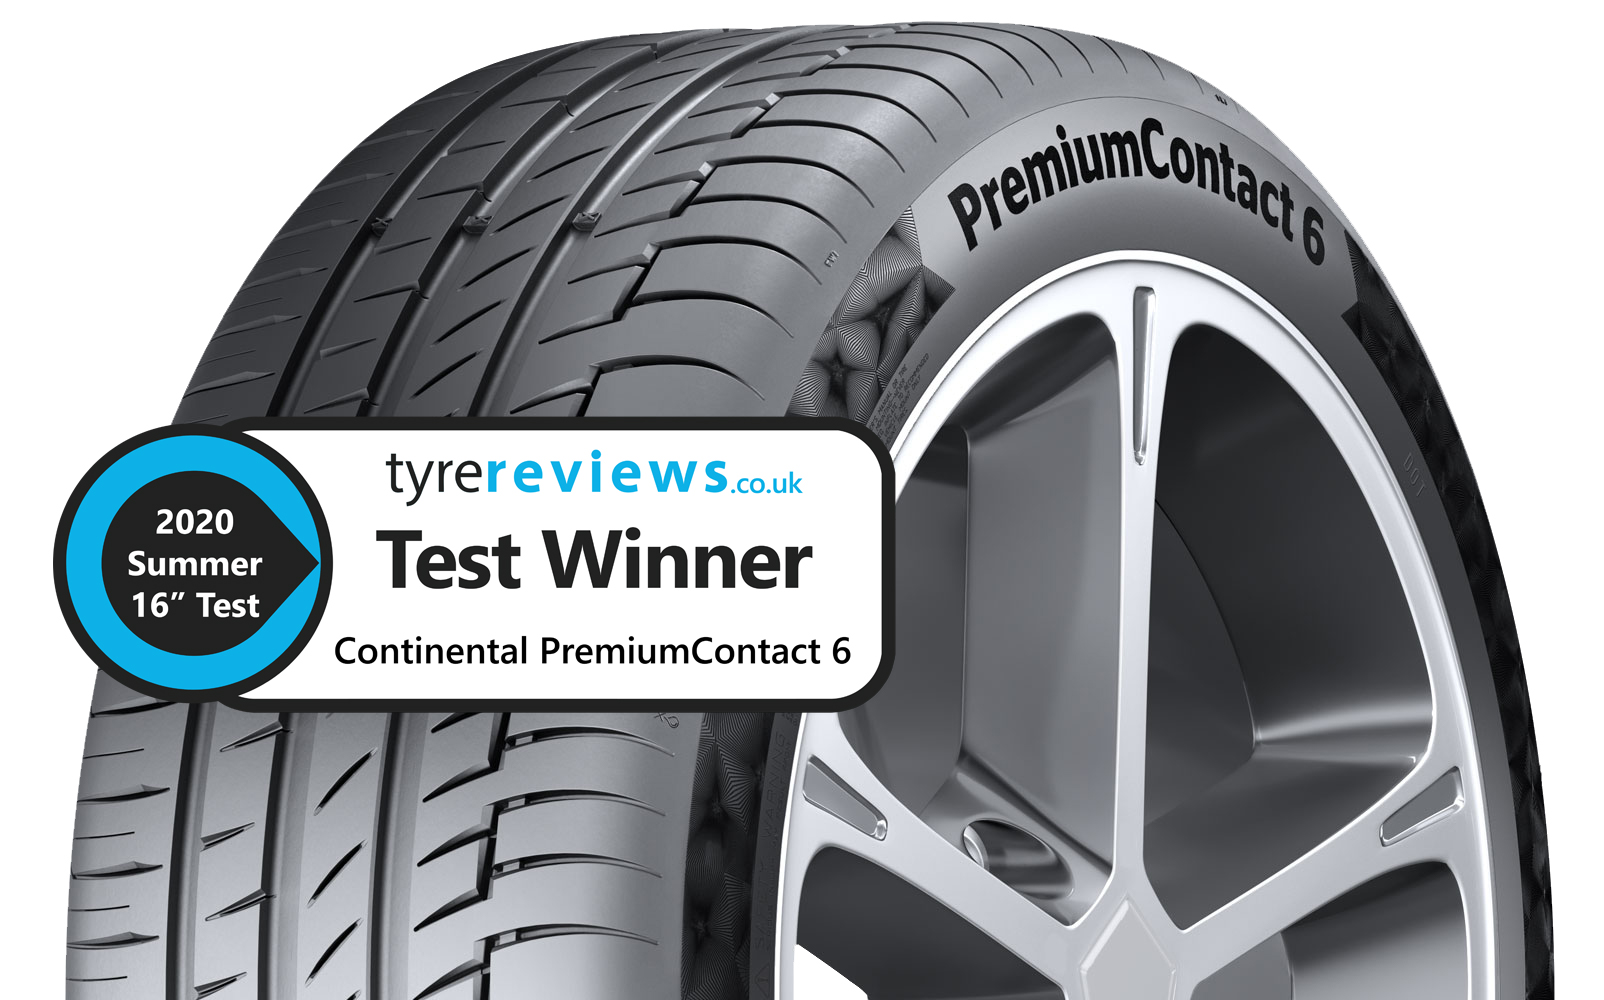 PremiumContact™ 6 wins Tyre Reviews' 2020 Ultimate Summer tyre test